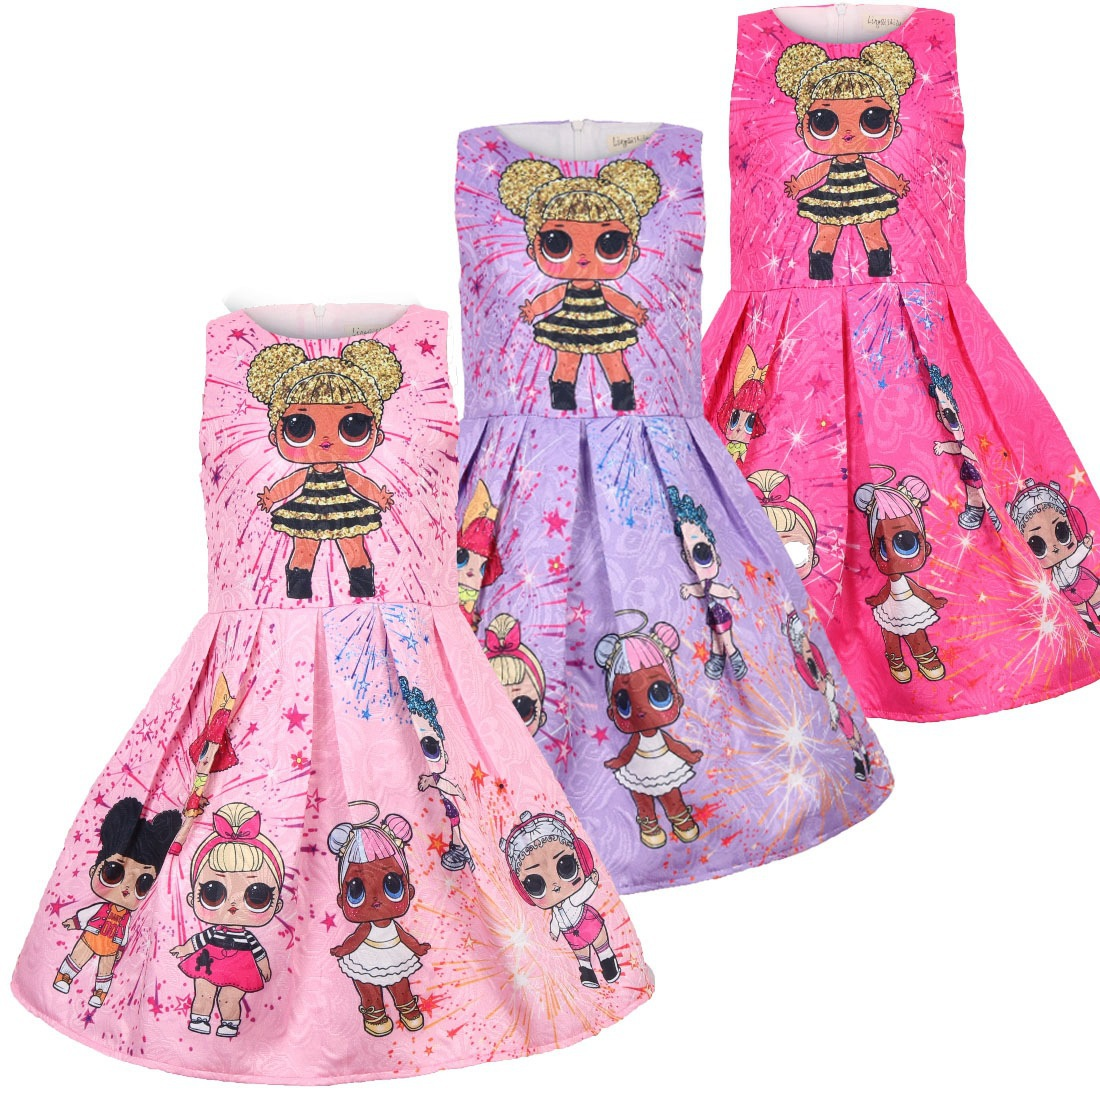 Lol Dolls Baby Dresses 3-9Y Summer Cute Elegant Dress Kids Party Christmas Costumes Children Clothes Princess Lol Girls Dress